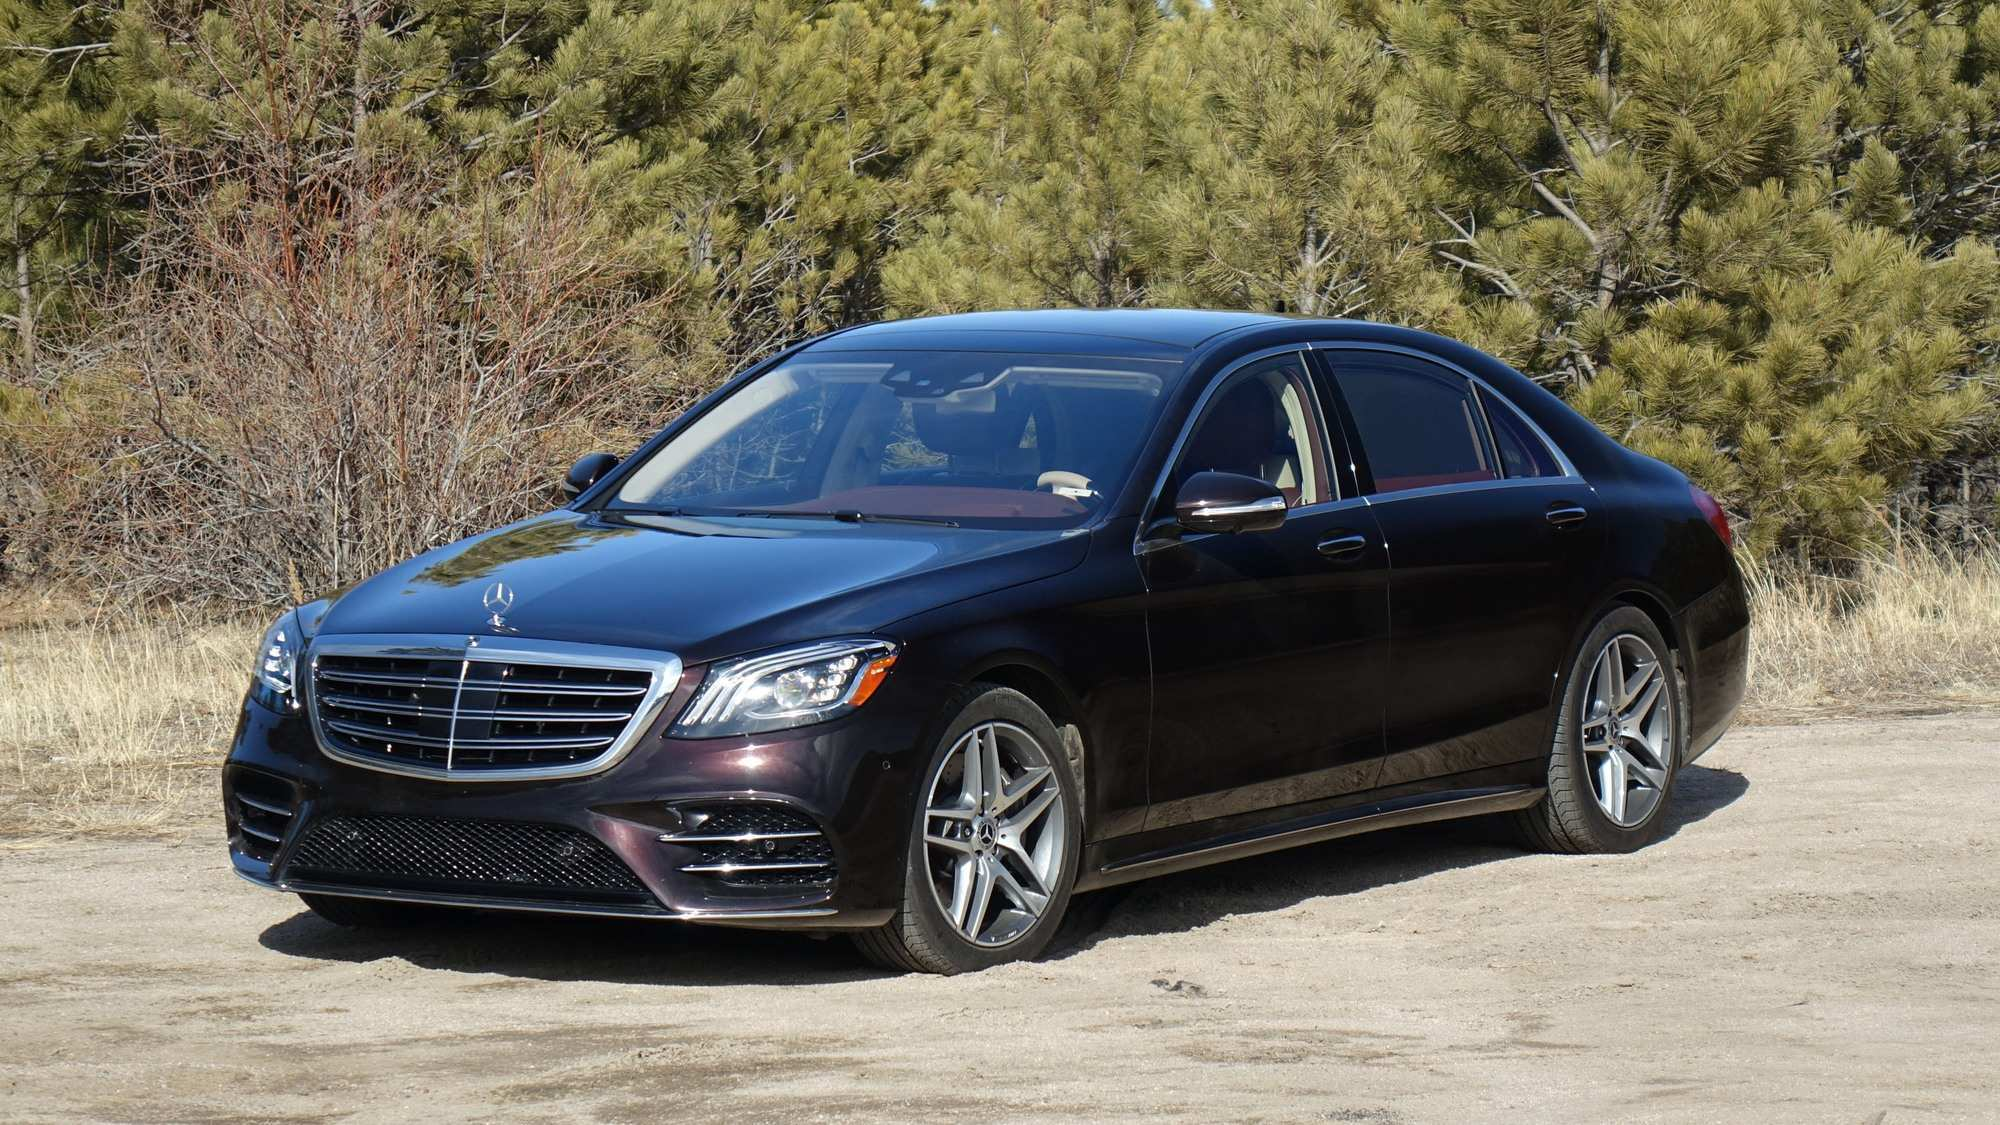 70 The Best S450 Mercedes 2019 Model